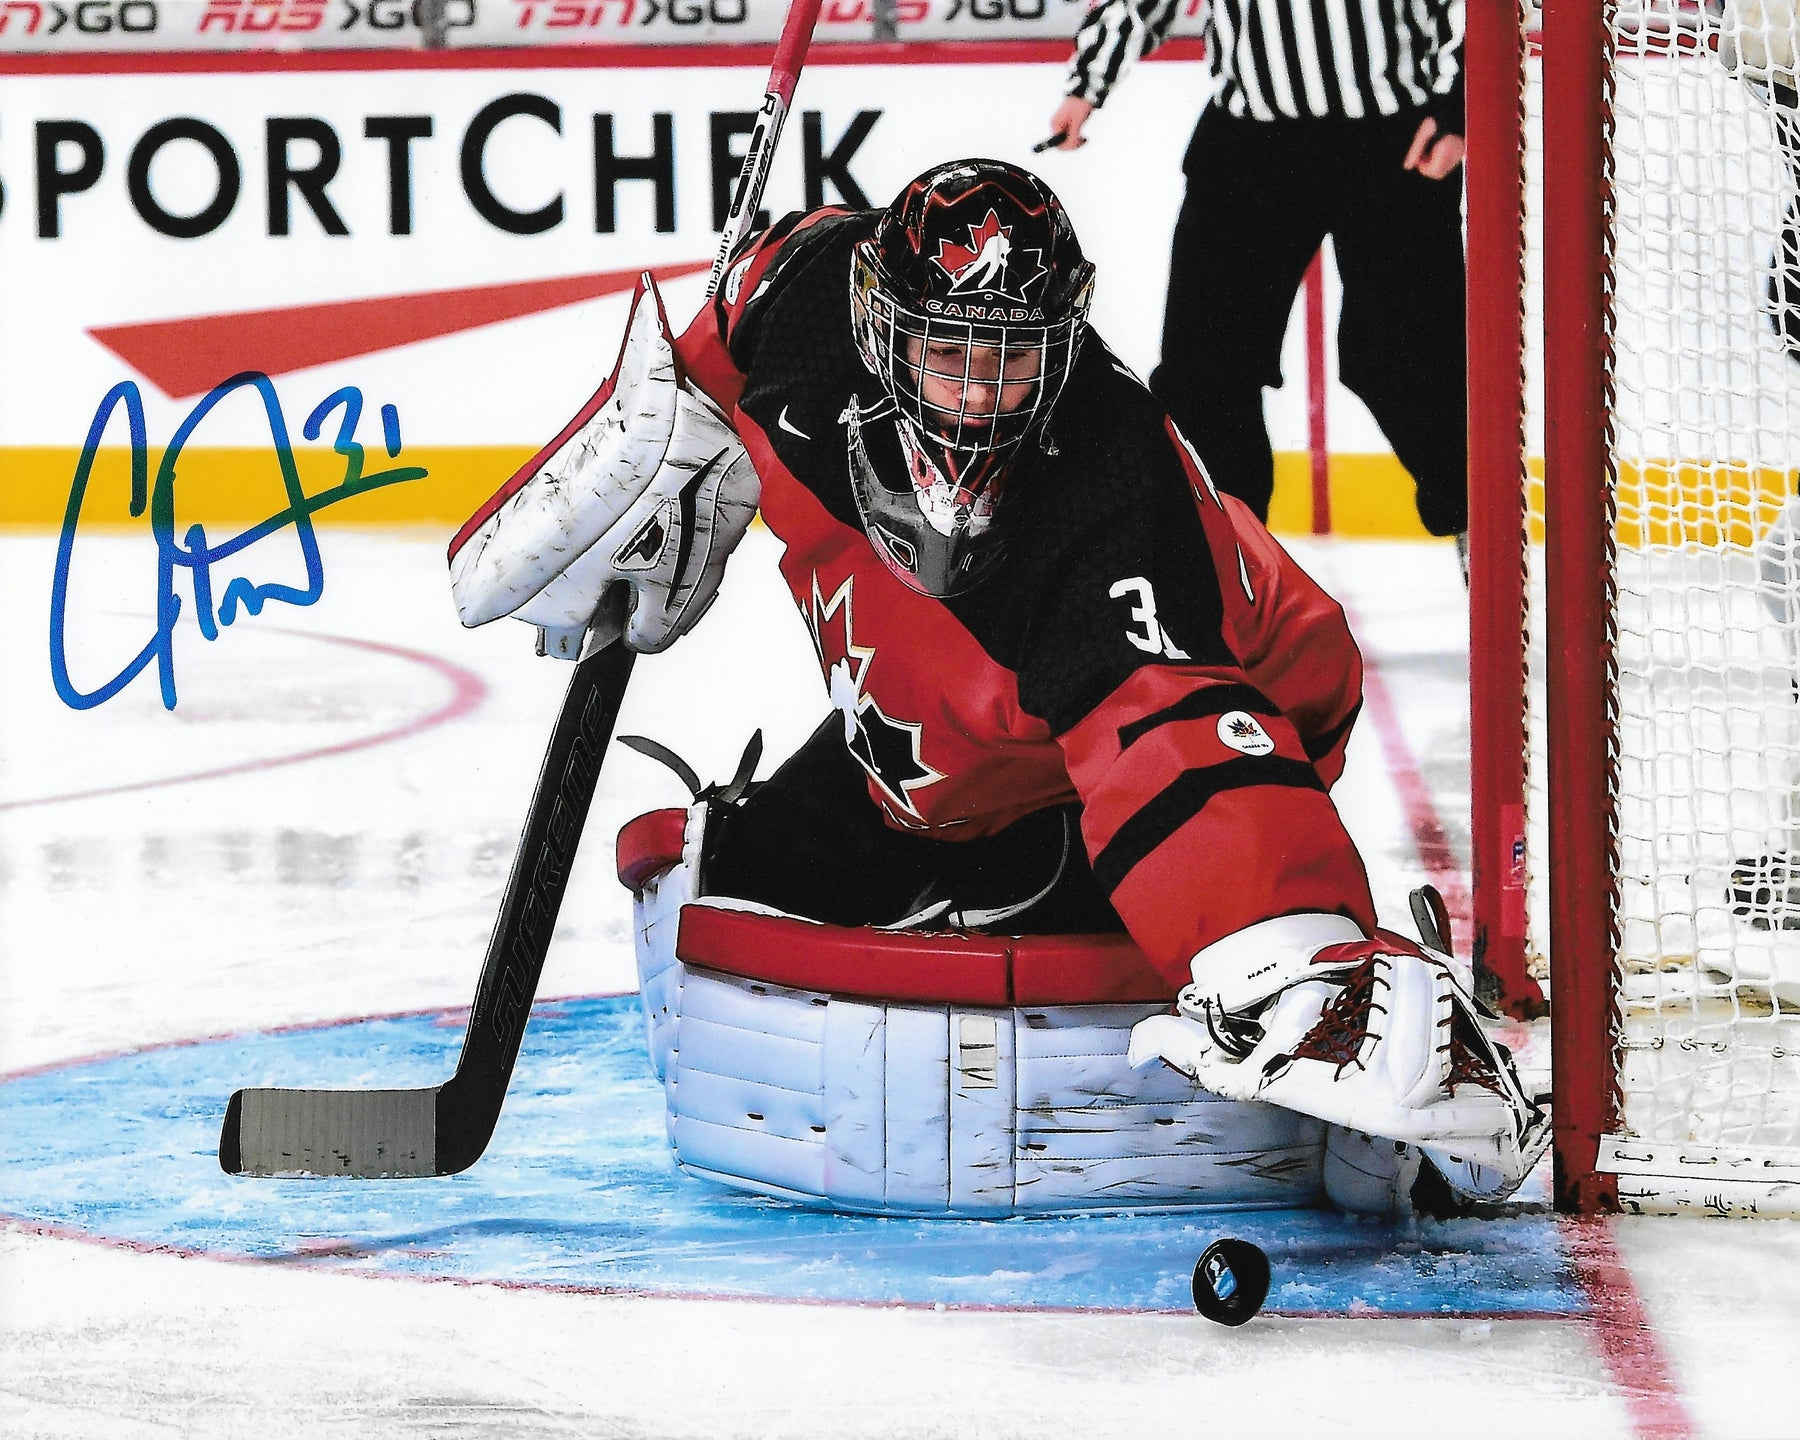 sale retailer 7215c 0ef9a Carter Hart Philadelphia Flyers In Goal for Team Canada Autographed NHL  Hockey Photo